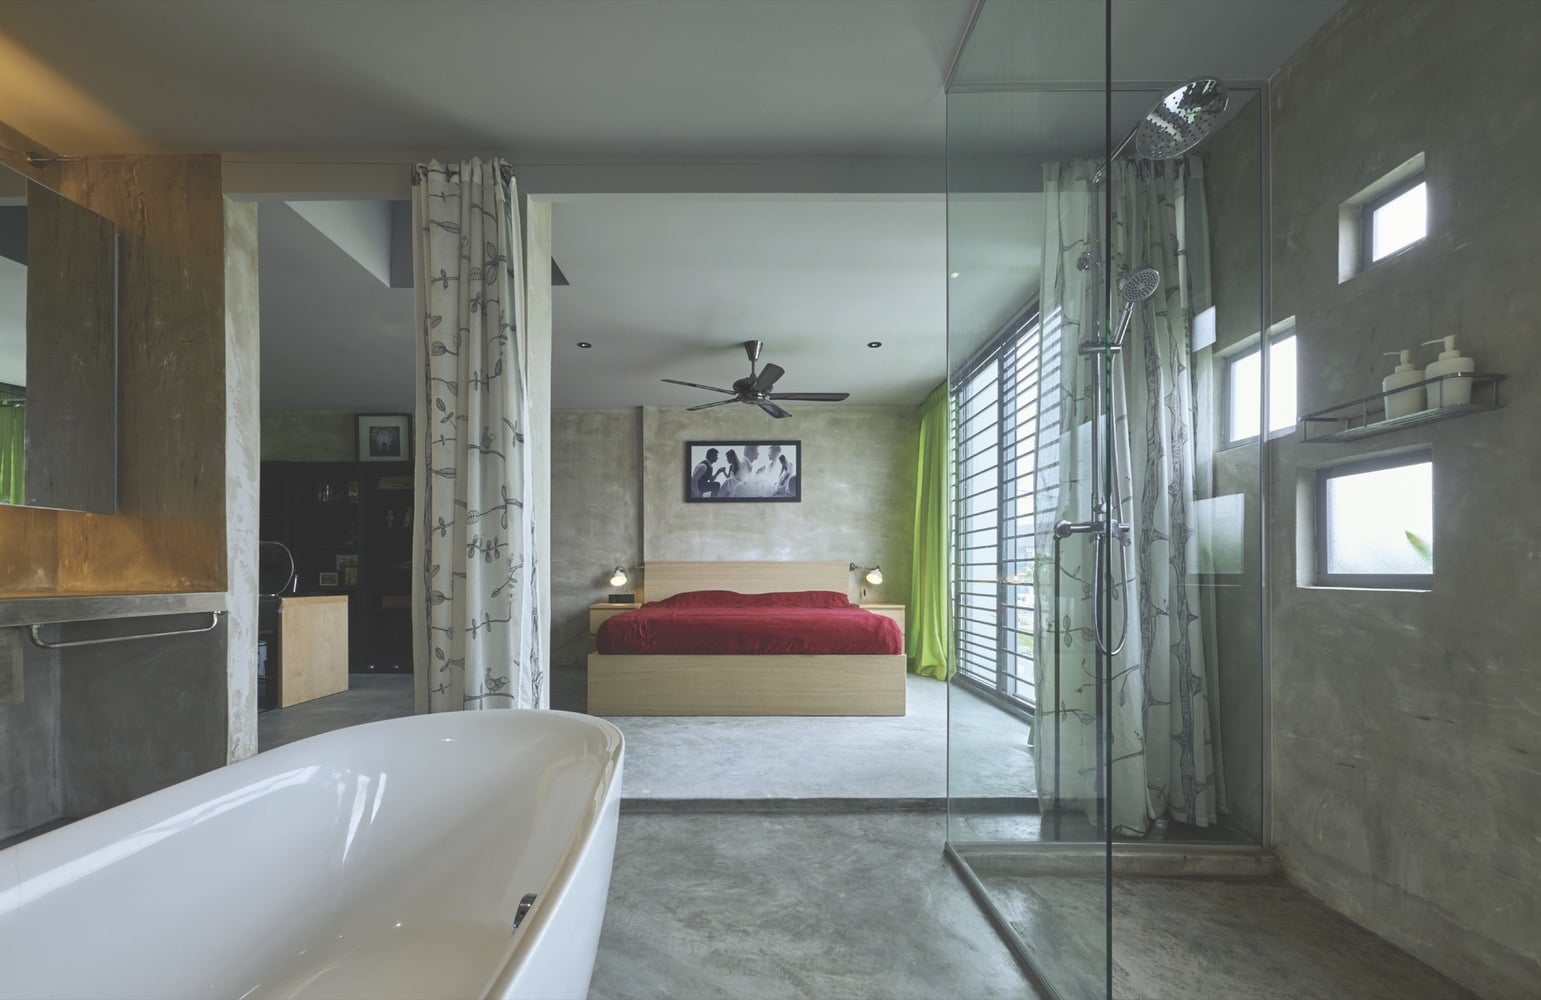 Bedroom and bathroom utilize sleek cement rendered finishing for a modern industrial look.